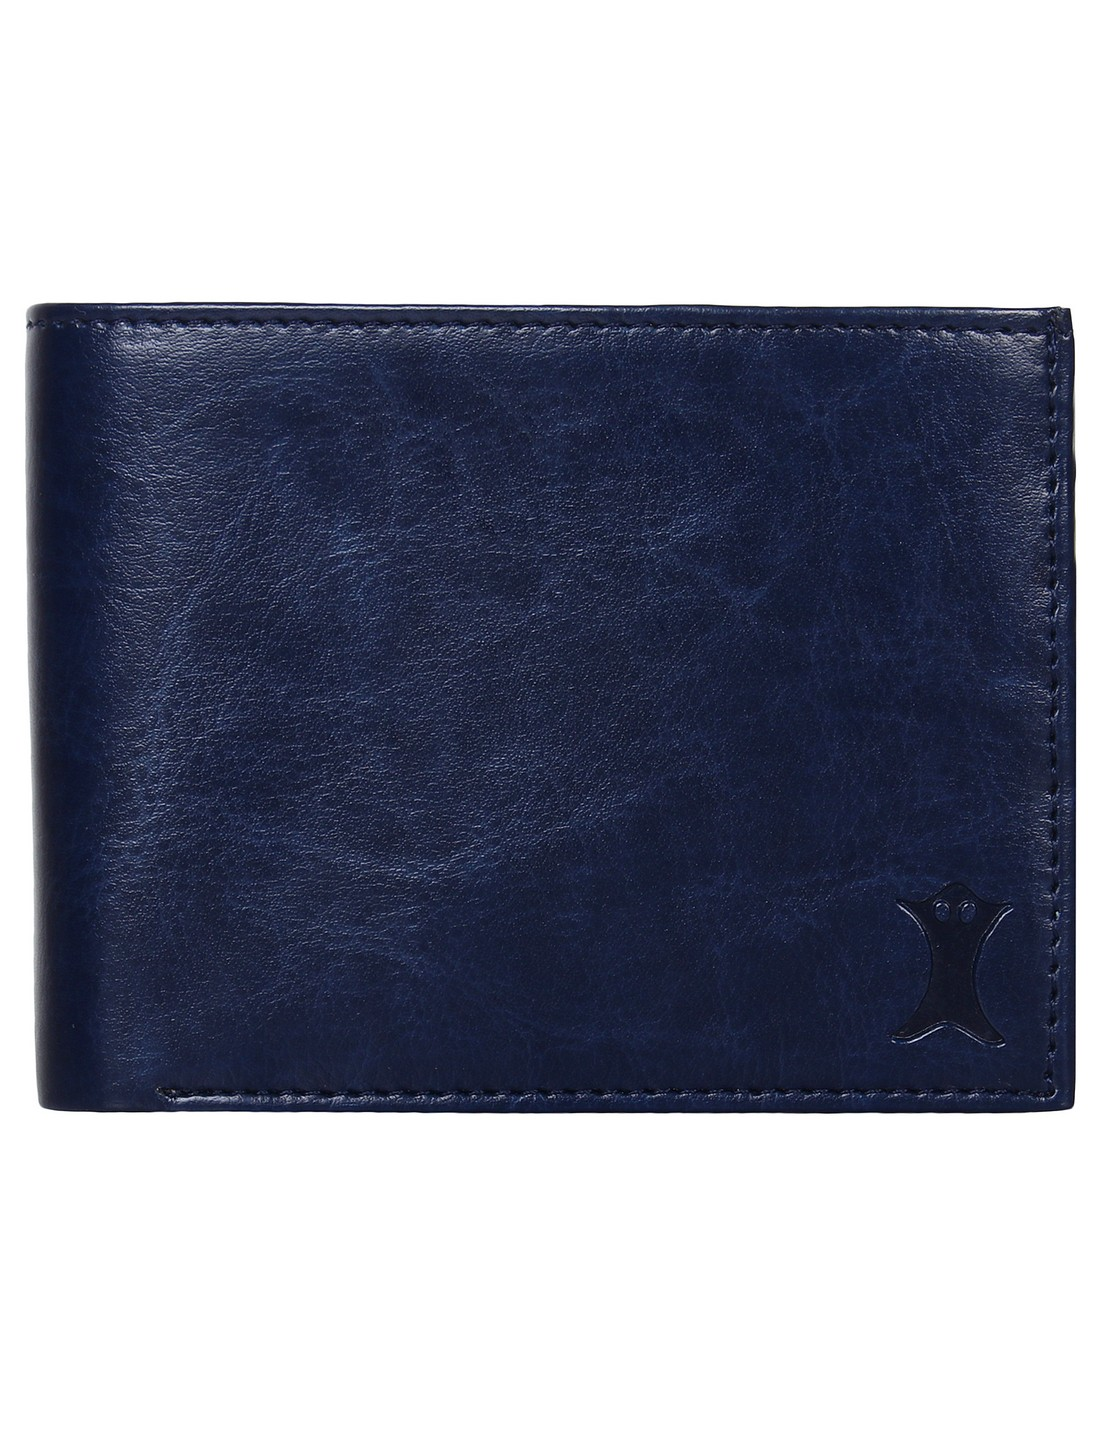 CREATURE | CREATURE Bi-Fold Blue PU Leather Wallet with Multiple Card Slots for Men